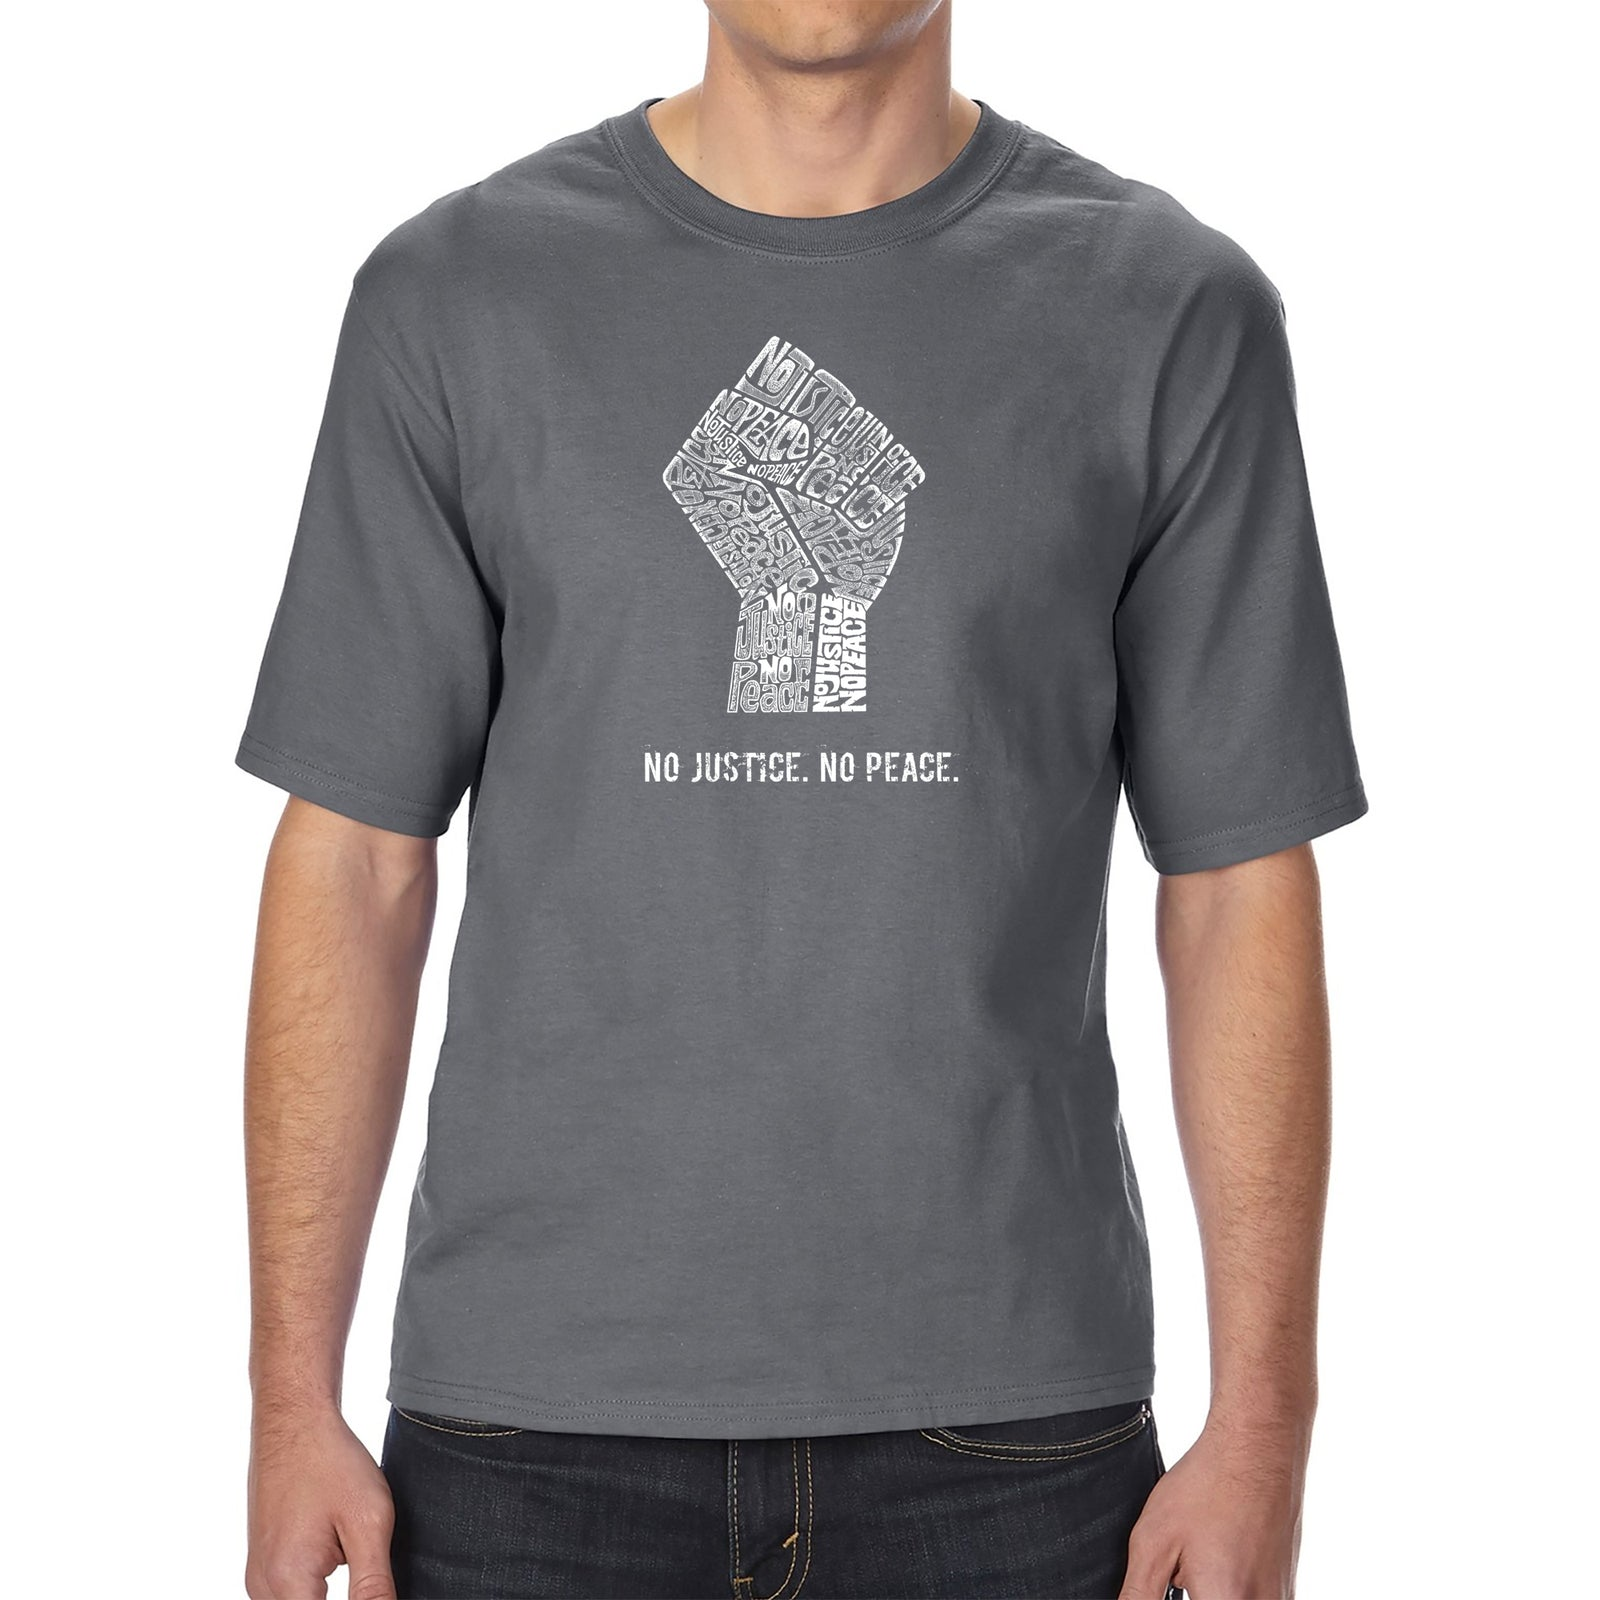 Men's Tall and Long Word Art T-shirt - No Justice, No Peace